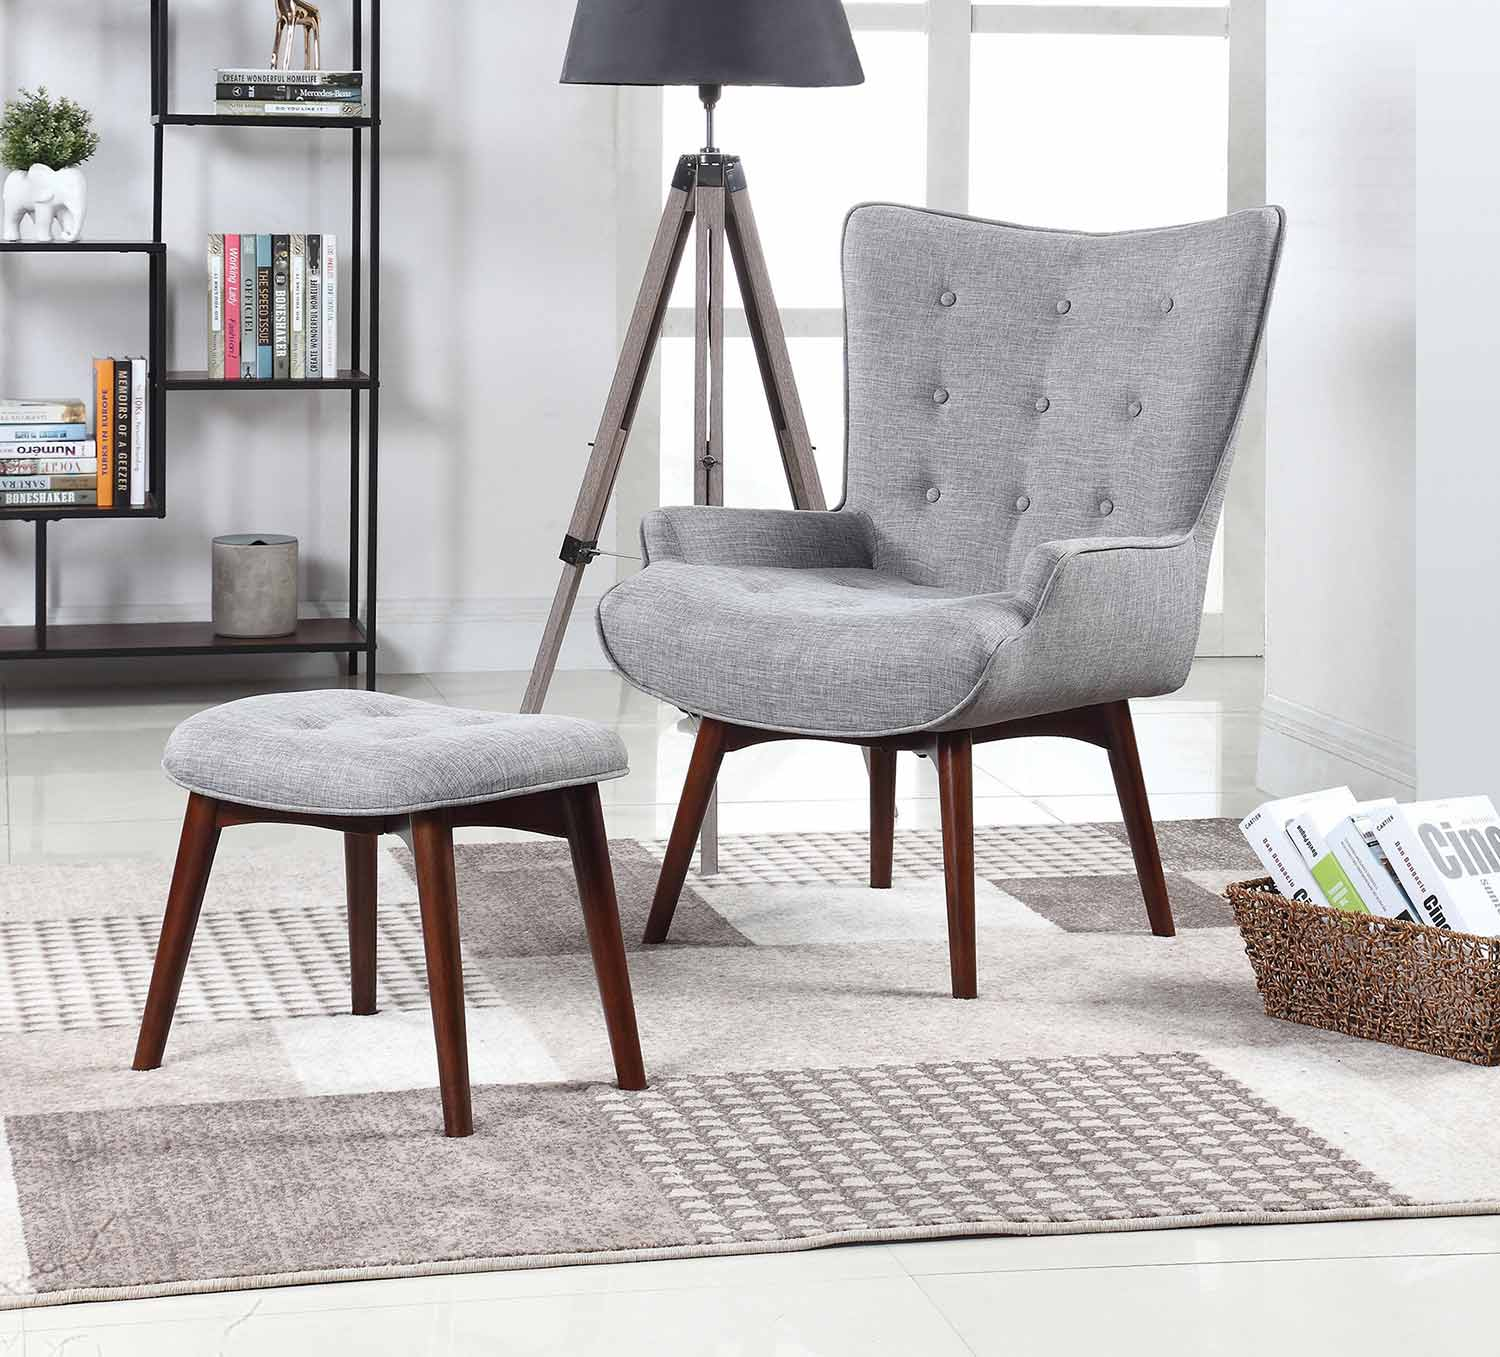 Coaster 903820 Accent Chair with Ottoman - Linen Fabric/Brown